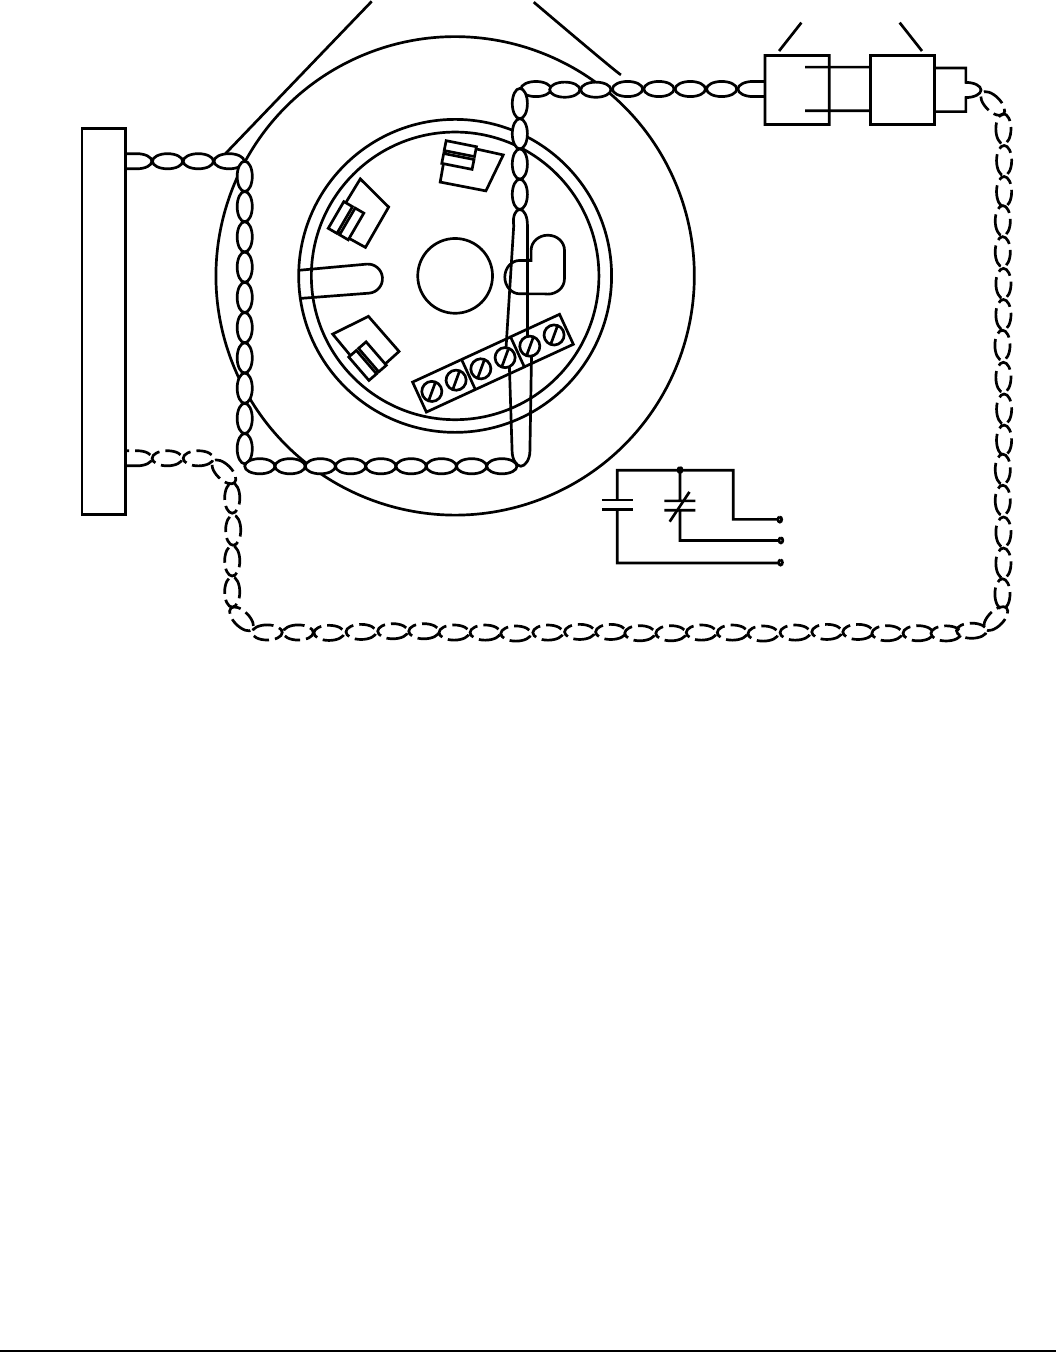 23be0842 f571 4fd3 bdea 0464d917c04a bg3 page 3 of system sensor smoke alarm b524rb(a) user guide system sensor 2451 wiring diagram at panicattacktreatment.co